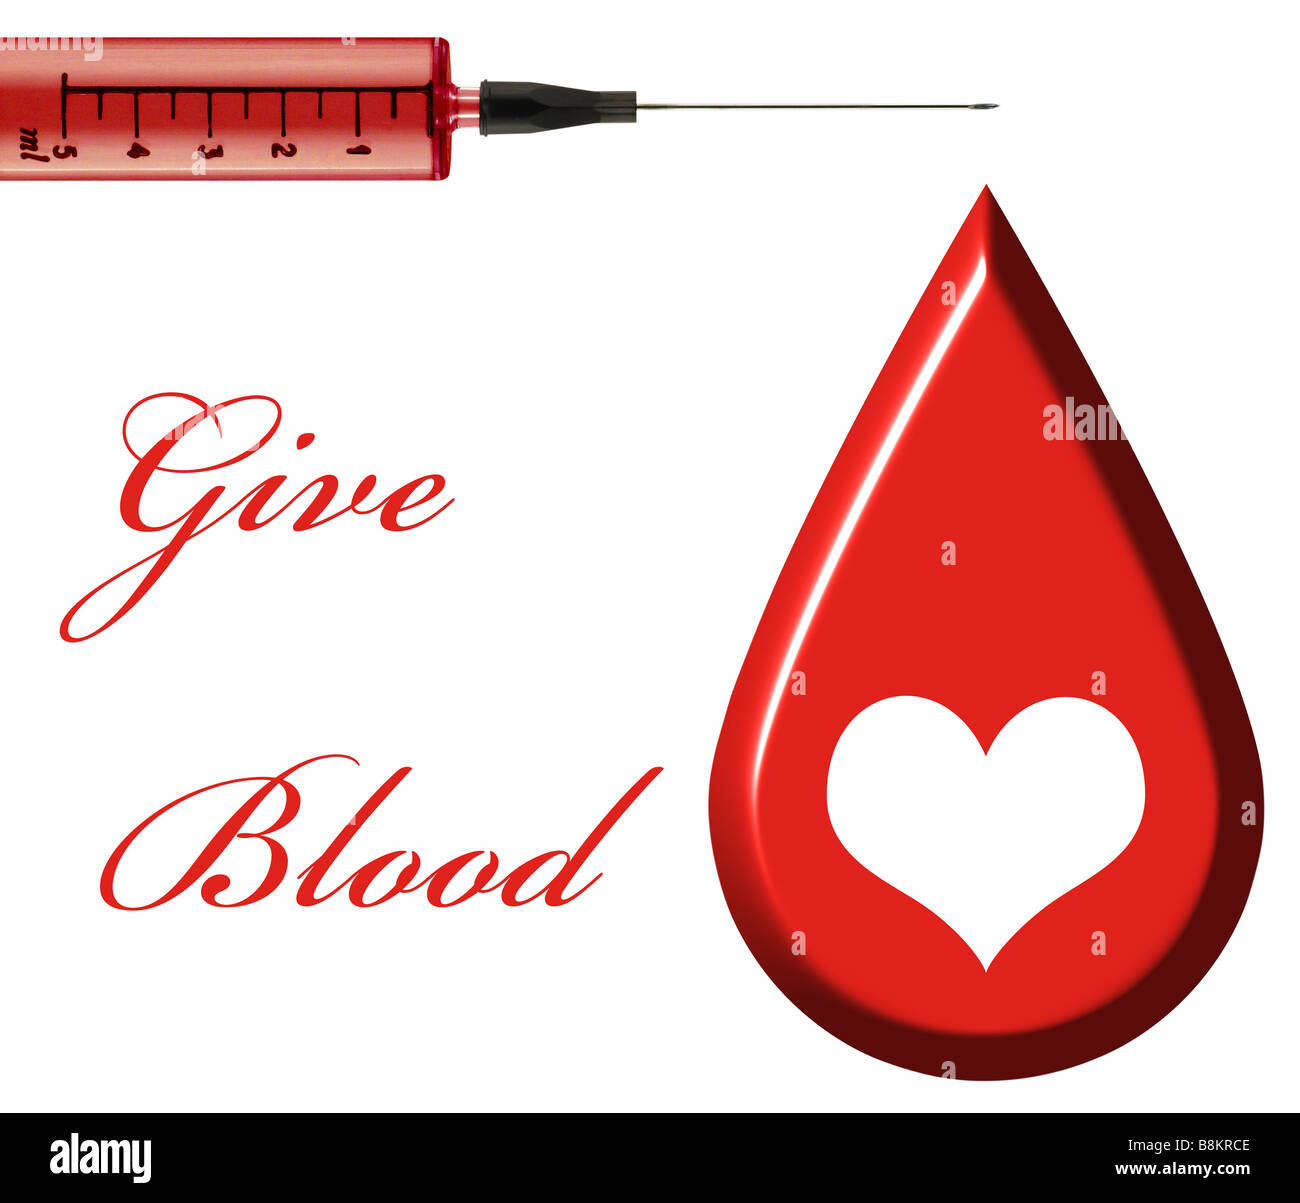 Give Blood - Stock Image